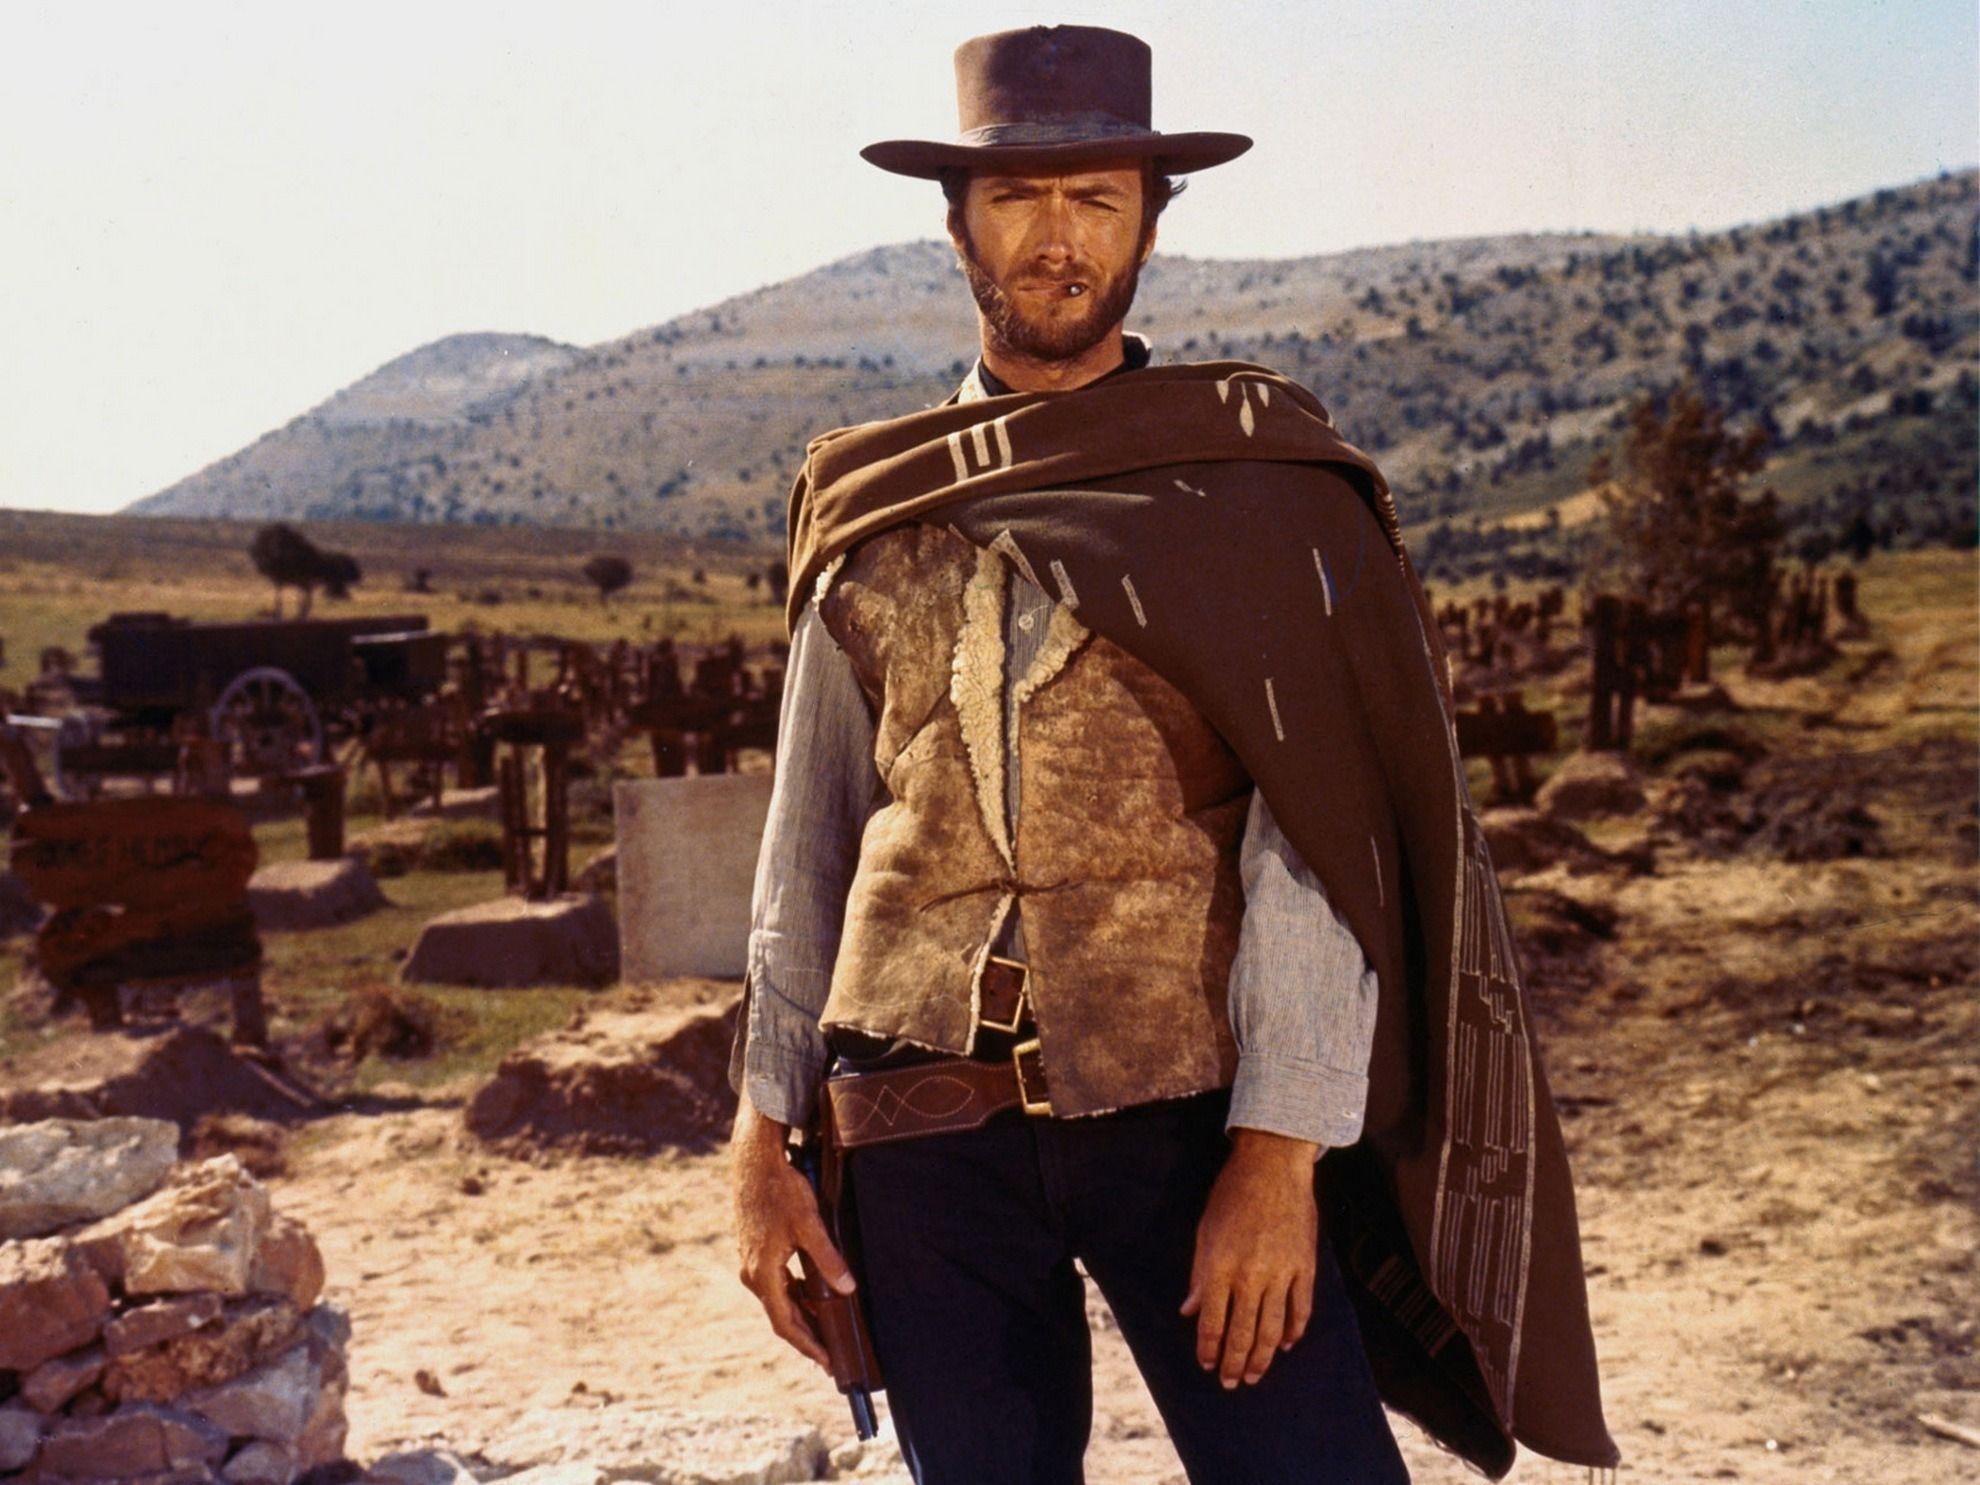 Clint Eastwood Cowboy Wallpaper: Wild West Wallpapers